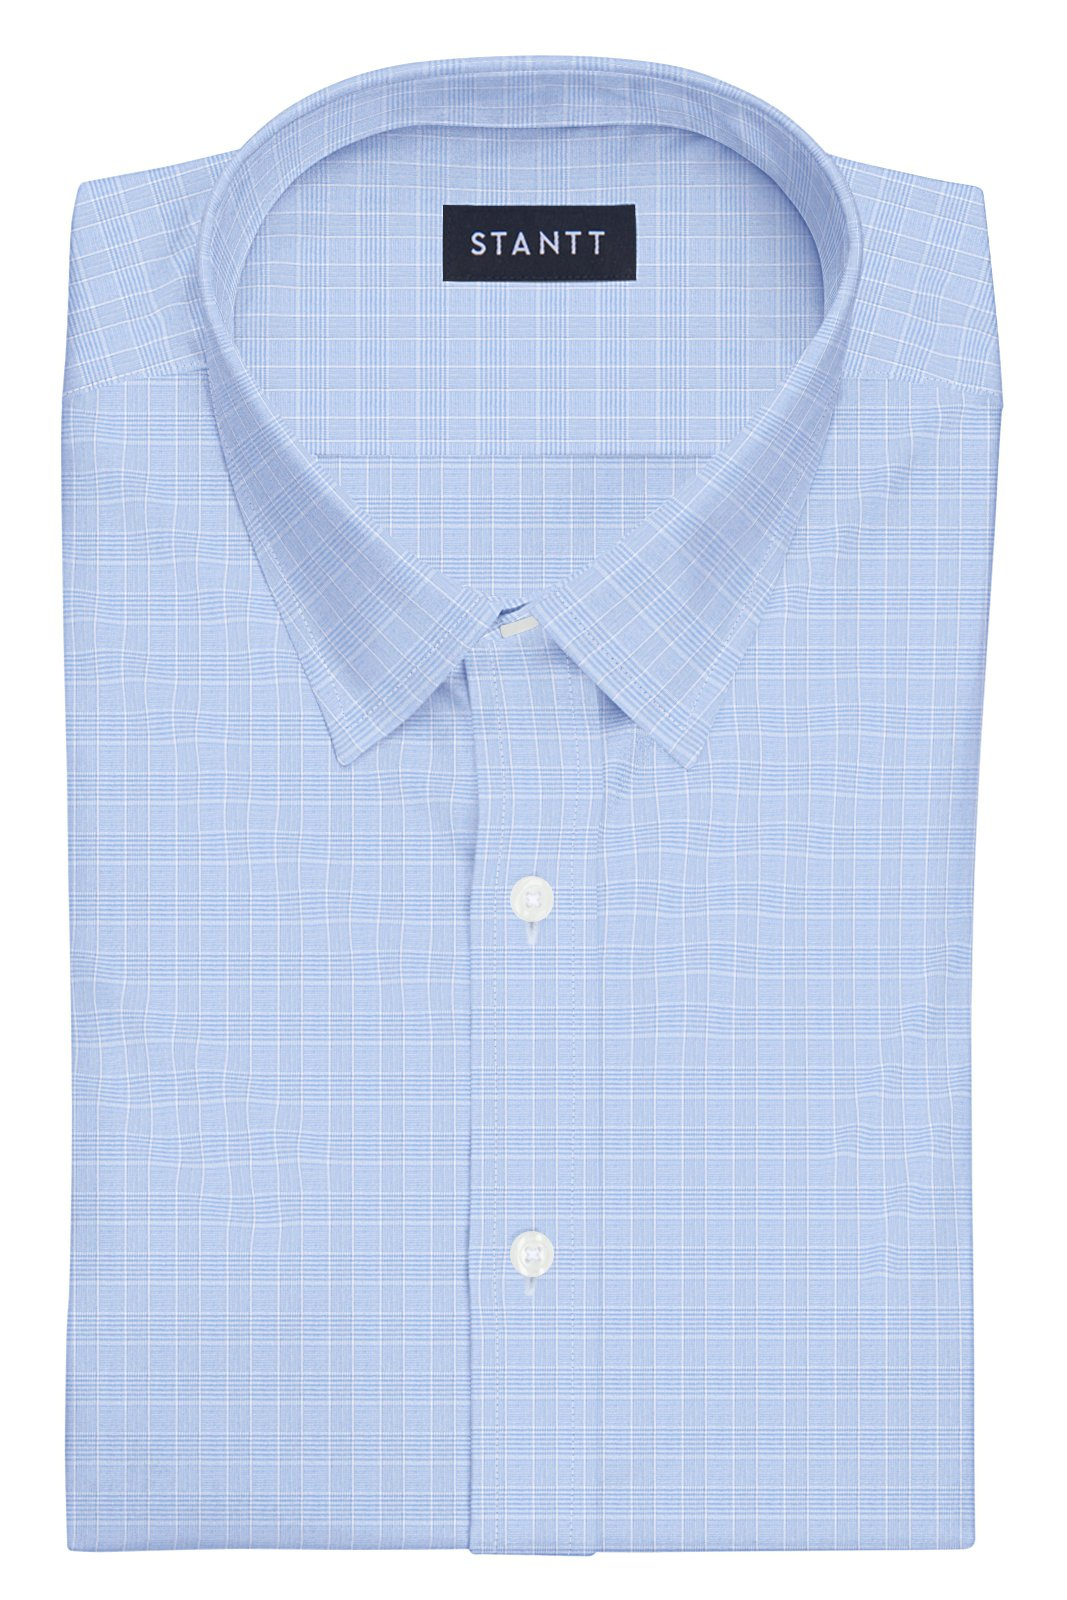 Light Blue Mini Prince of Wales Check: Semi-Spread Collar, French Cuff